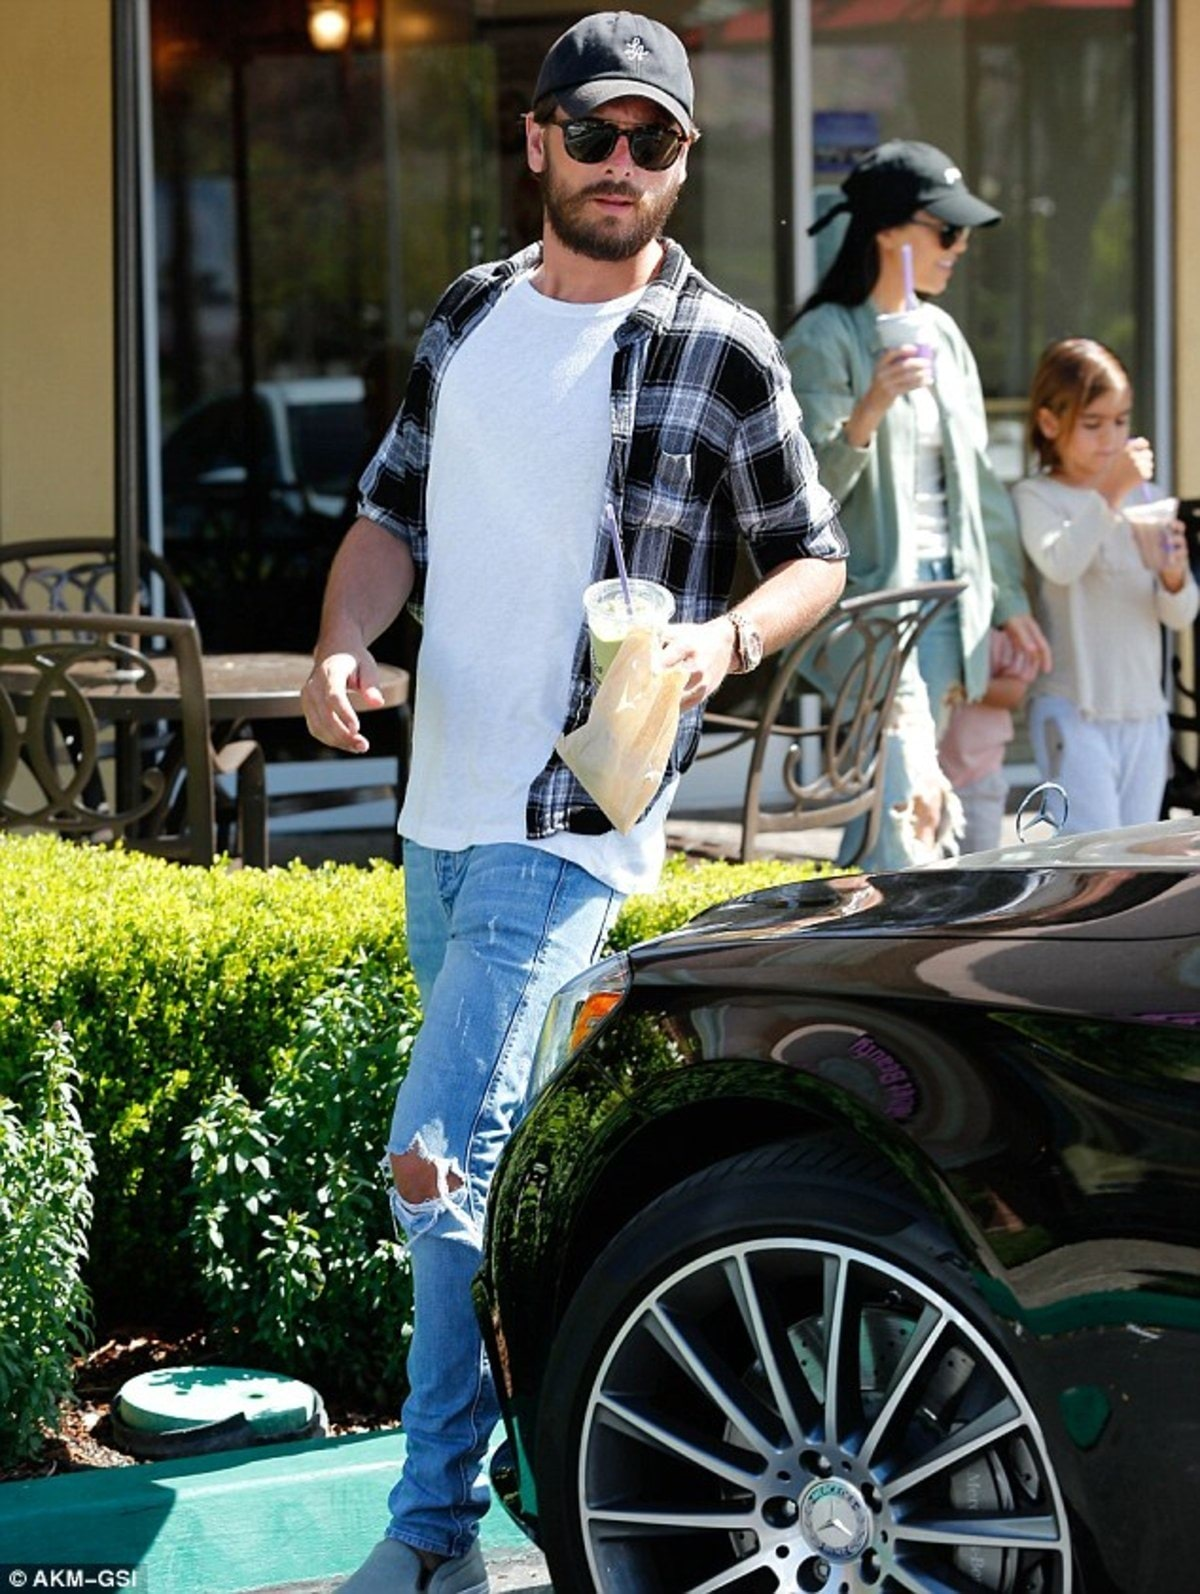 31F0460600000578-3479638-Dad_life_Scott_wore_jeans_with_rips_across_the_knees_adding_a_wh-m-25_1457309126221